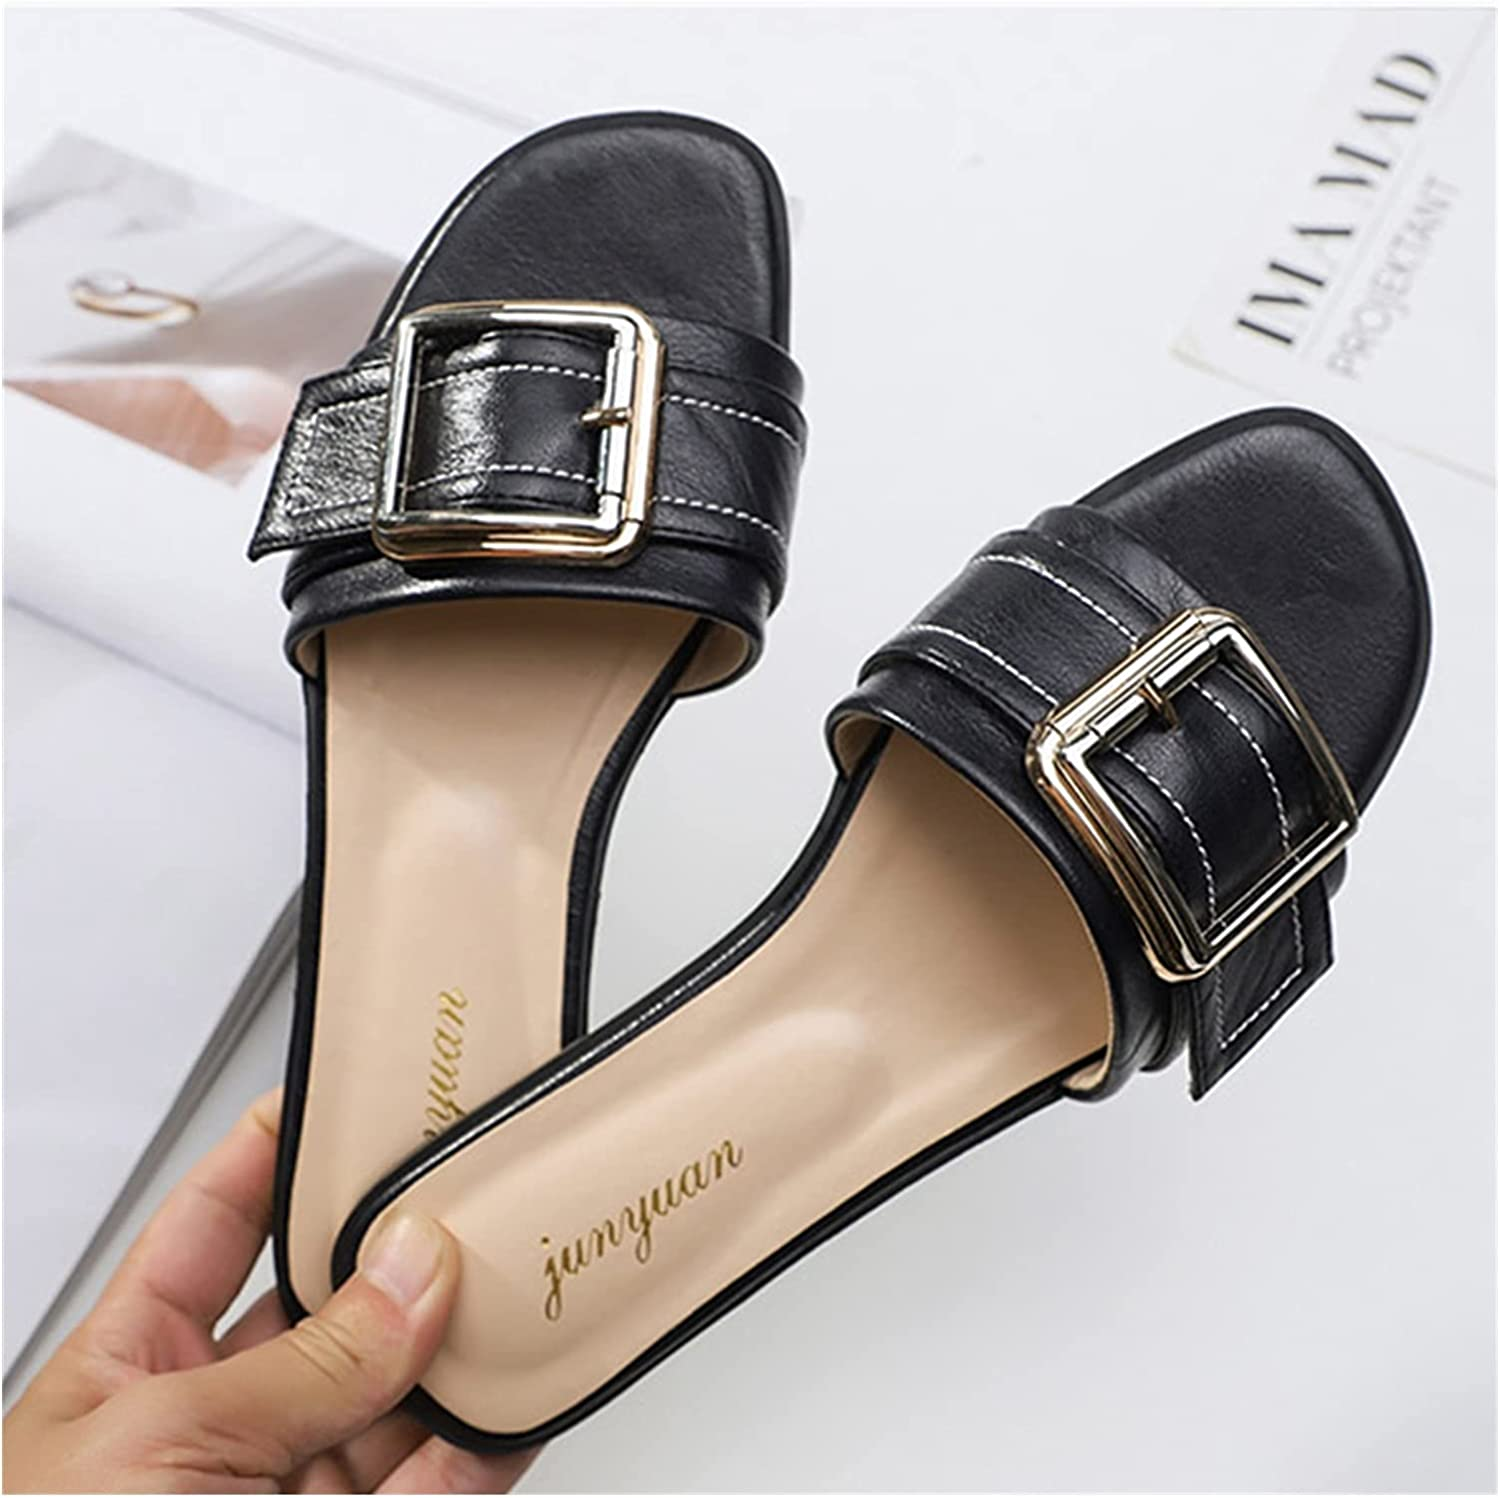 QUNHU Flat Dealing full price reduction Shoes for Woman Summer Womens Sandals Popular brand in the world Flip-Flops